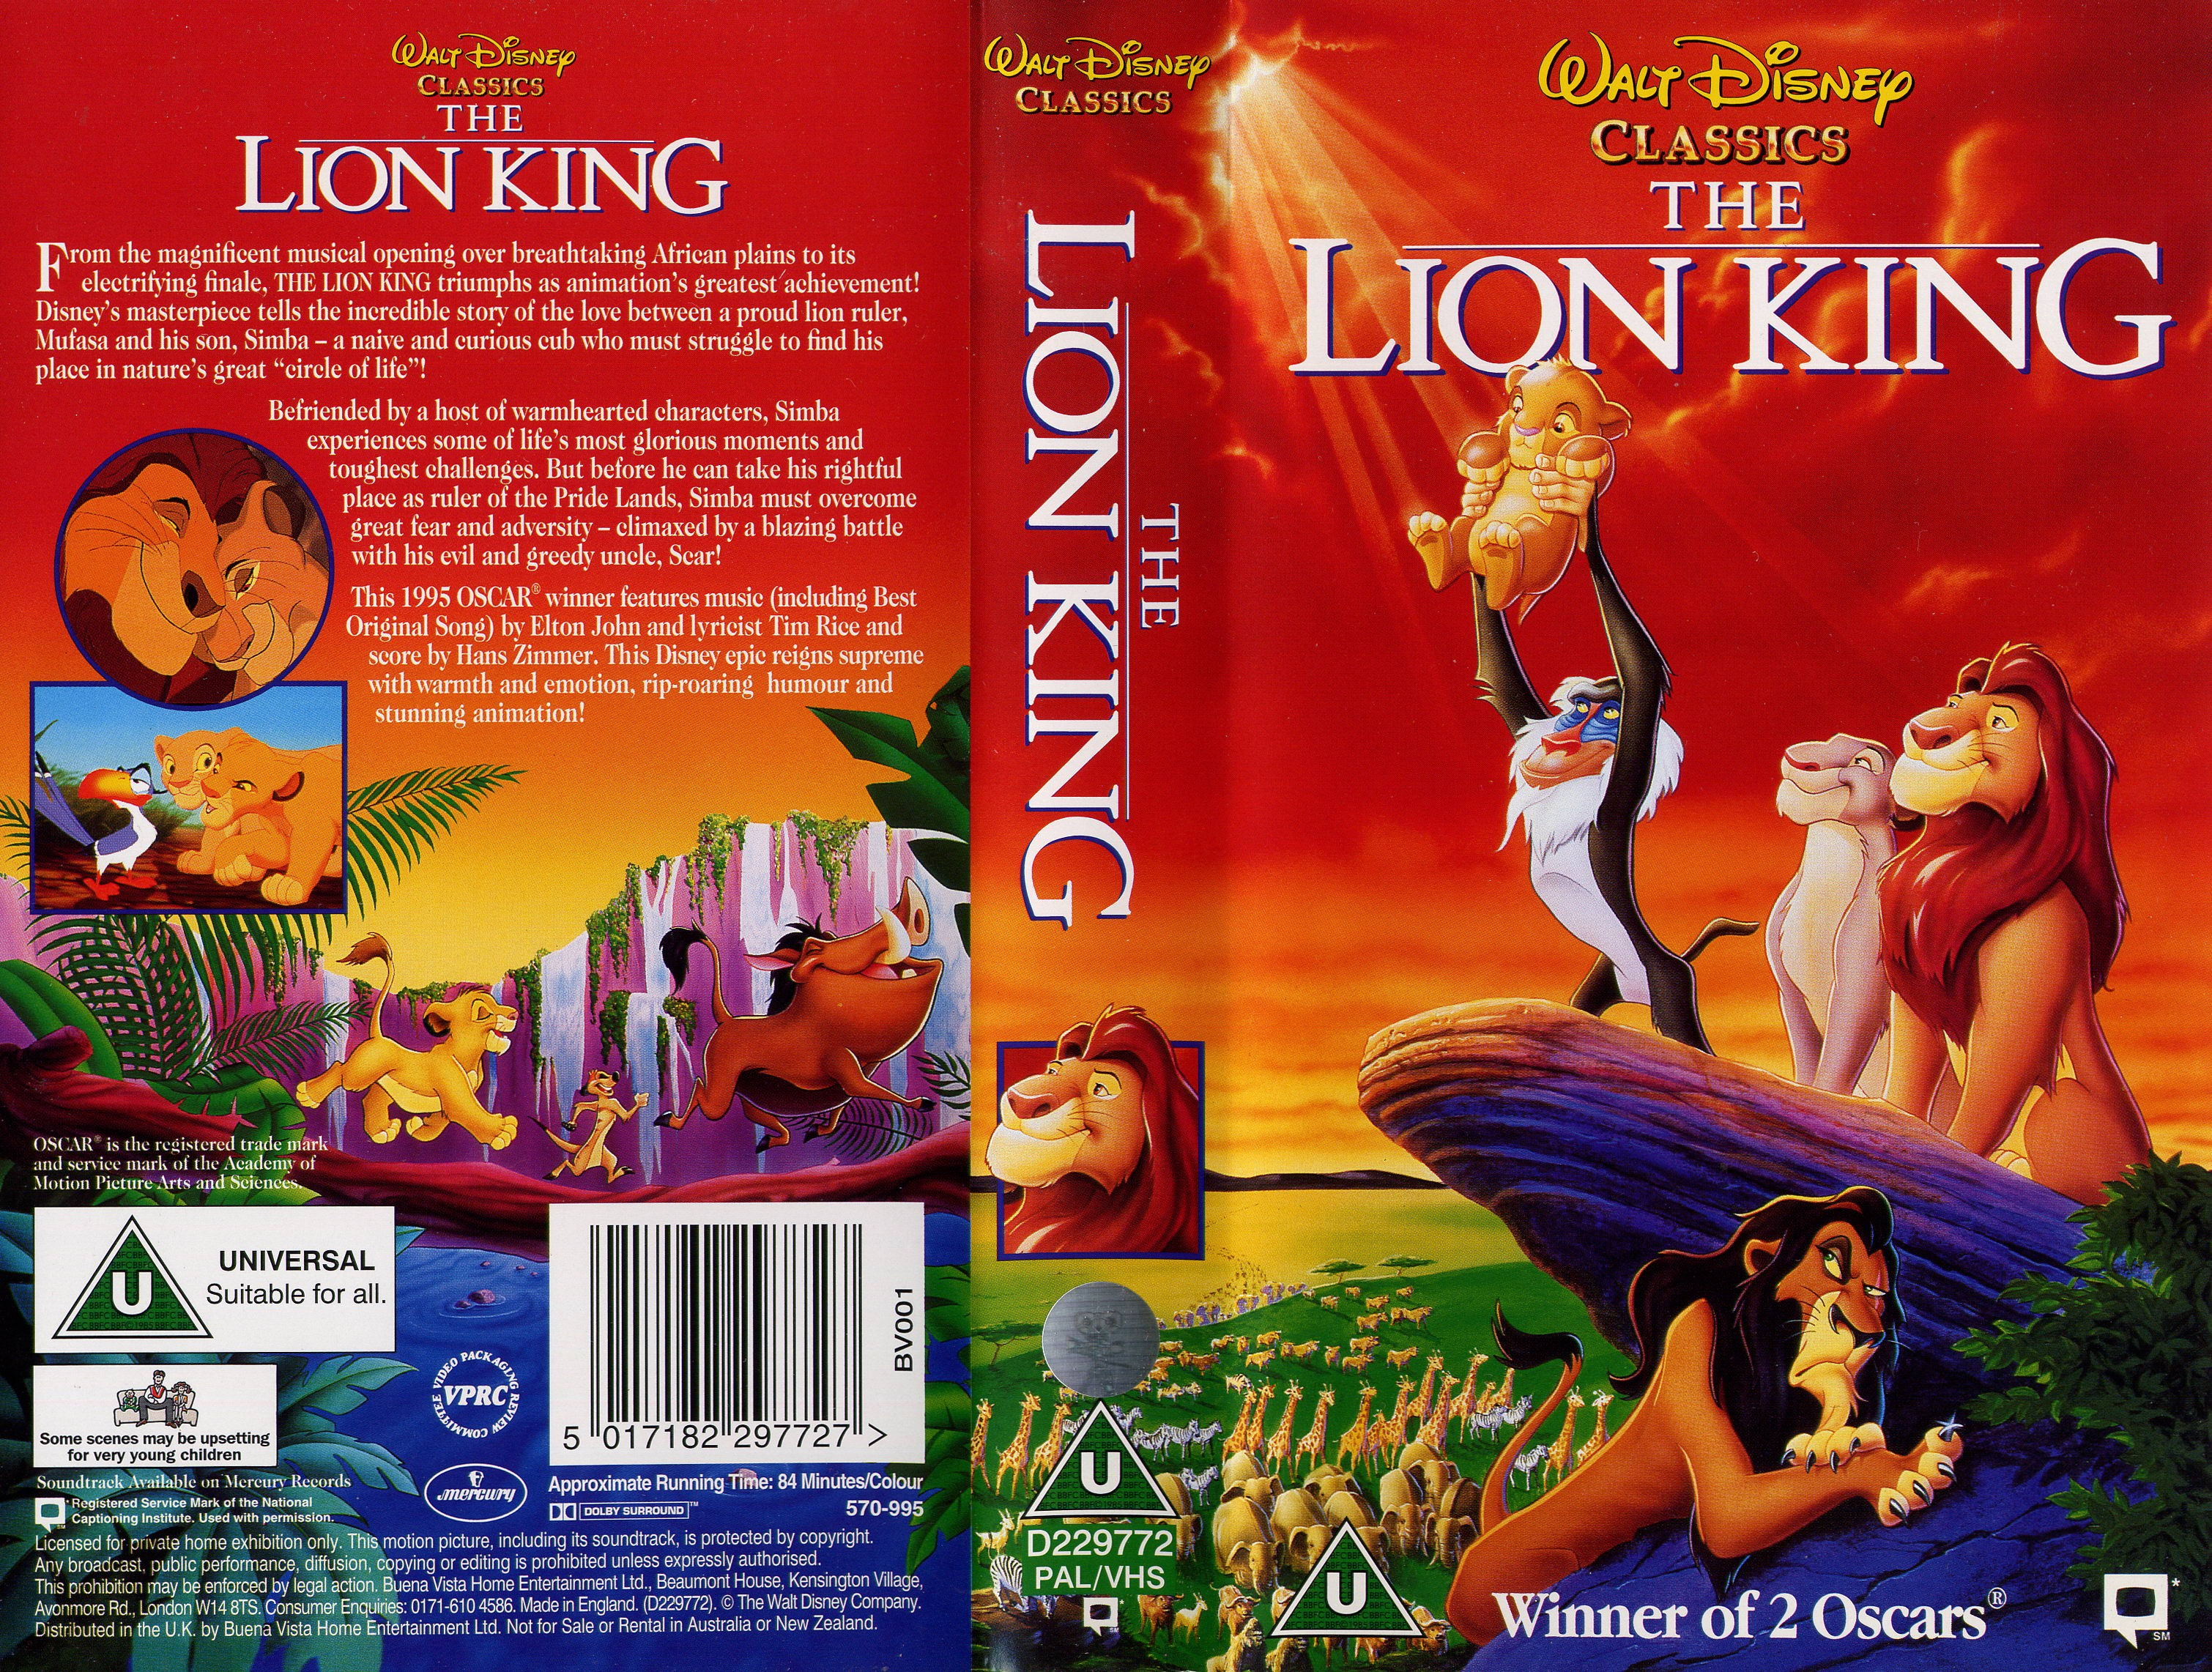 the circle of life in the lion king a movie by walt disney